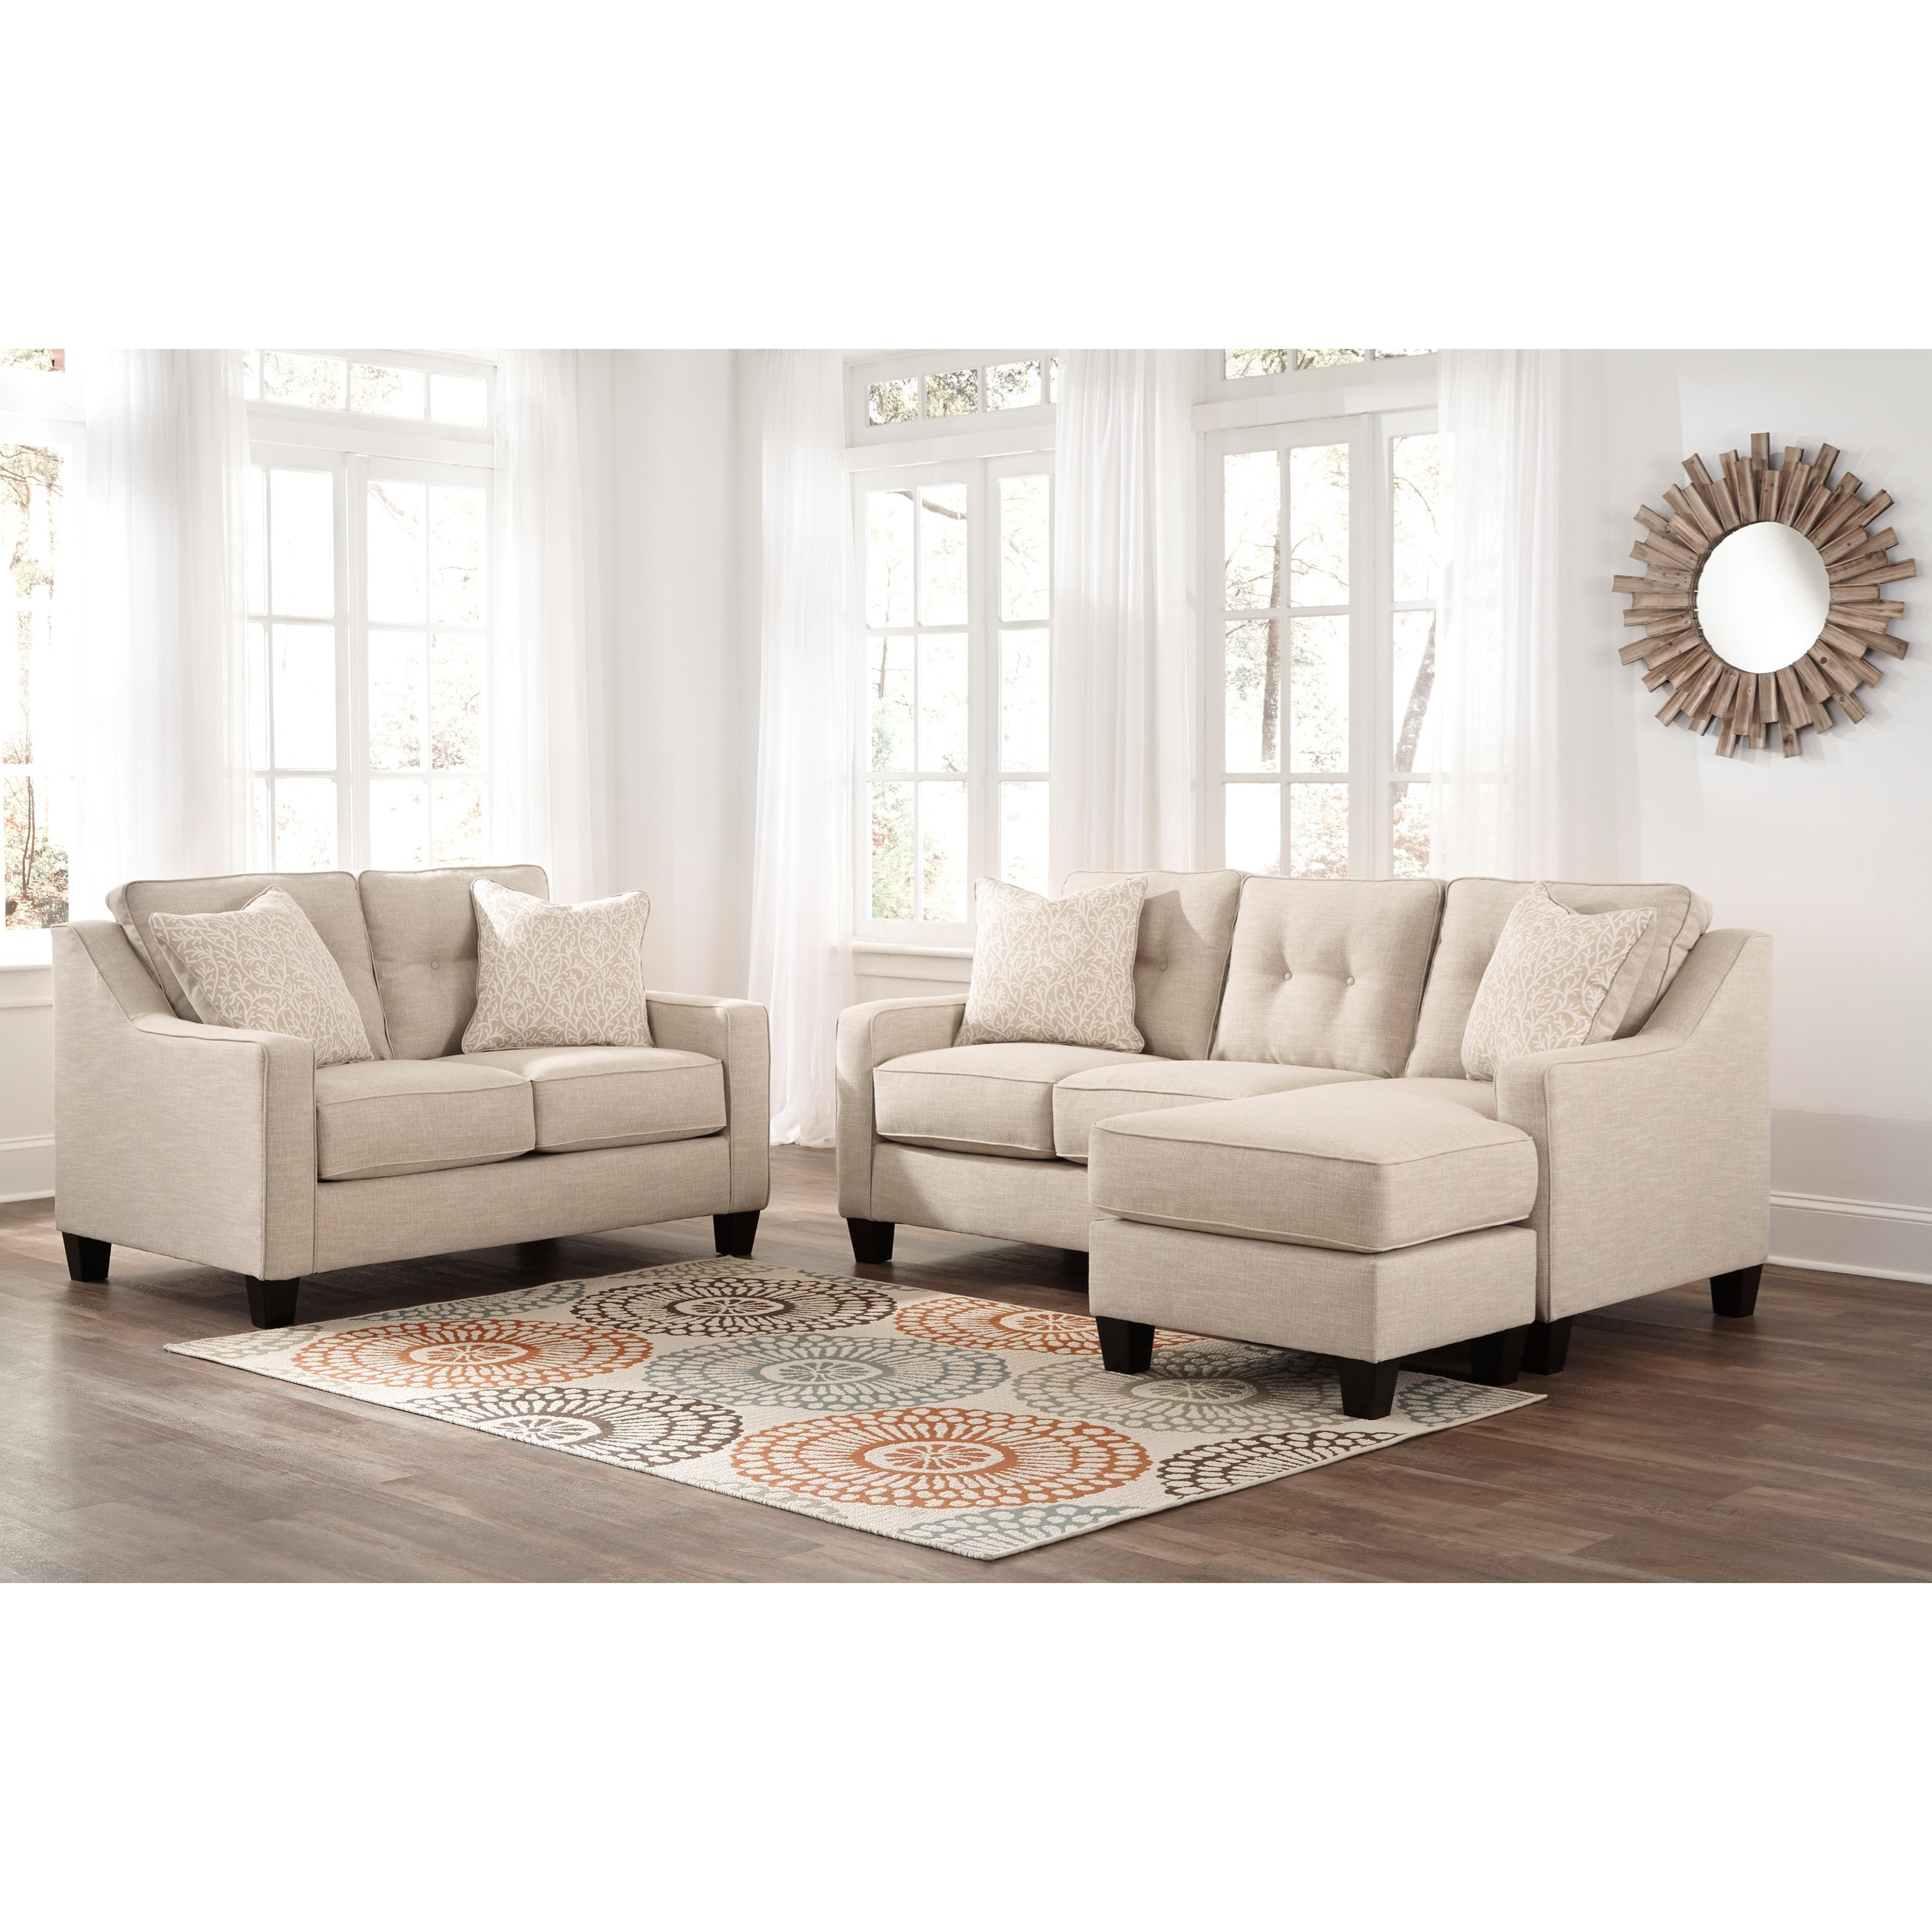 Benchcraft Aldie Nuvella Stationary Living Room Group - Item Number: 68705 Living Room Group 1